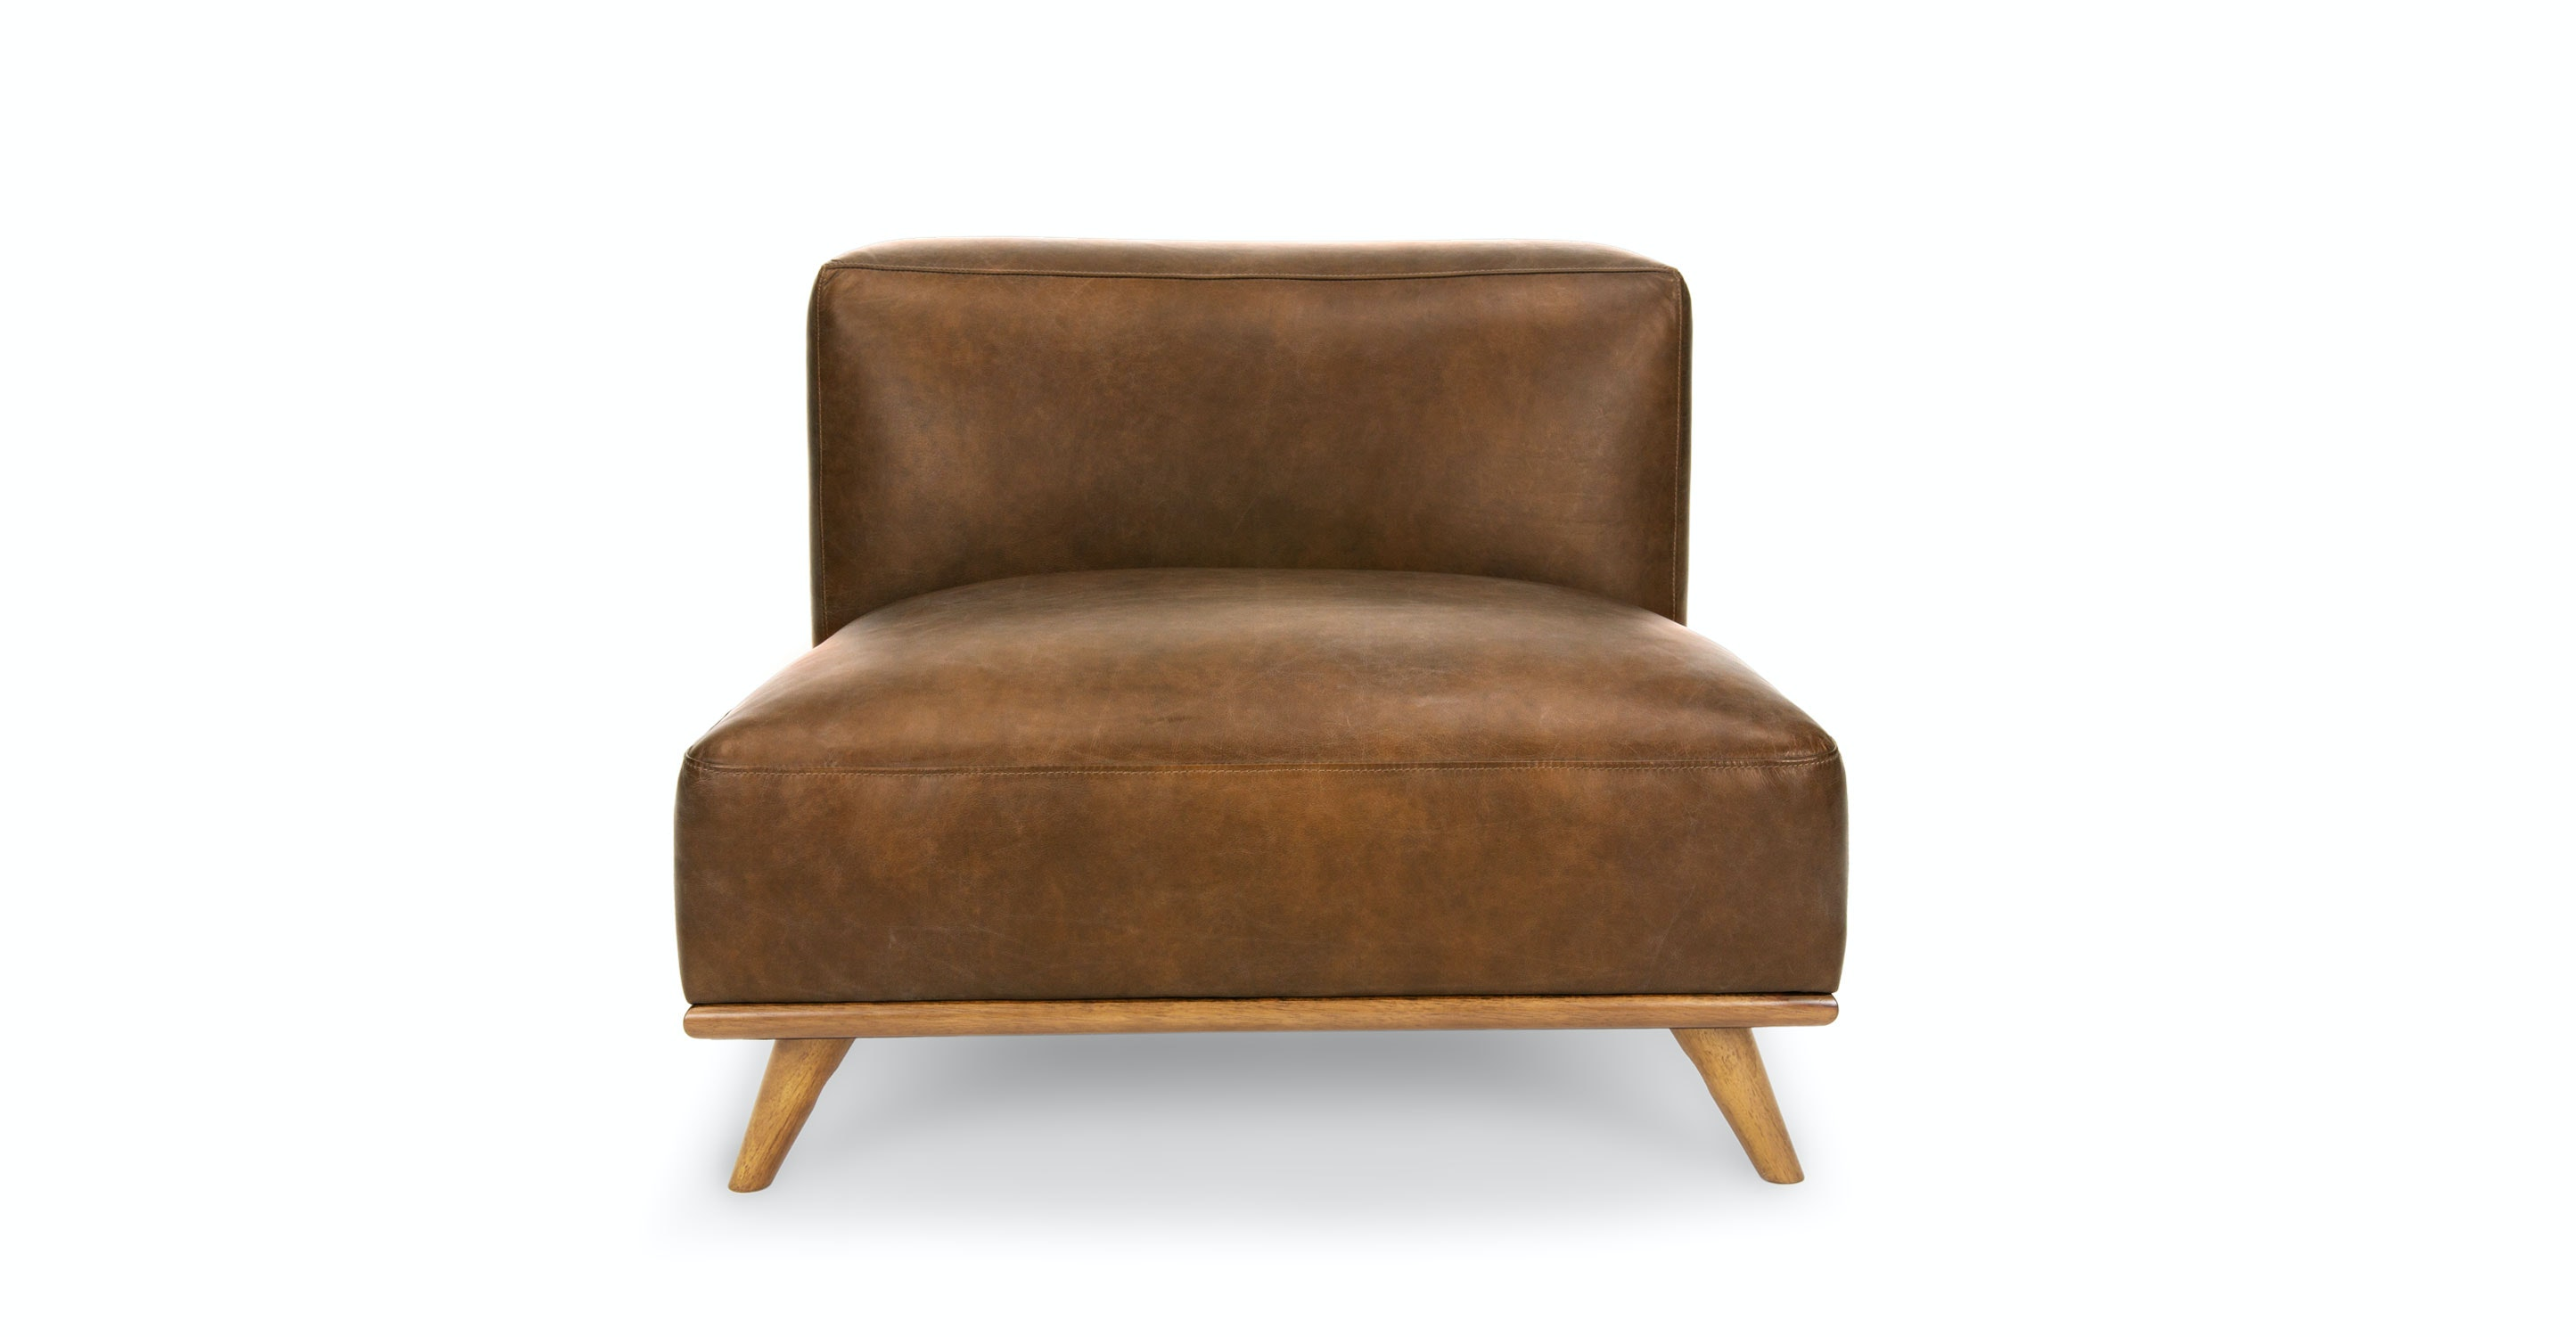 Snug Oxford Tan Chair Lounge Chairs Article Modern